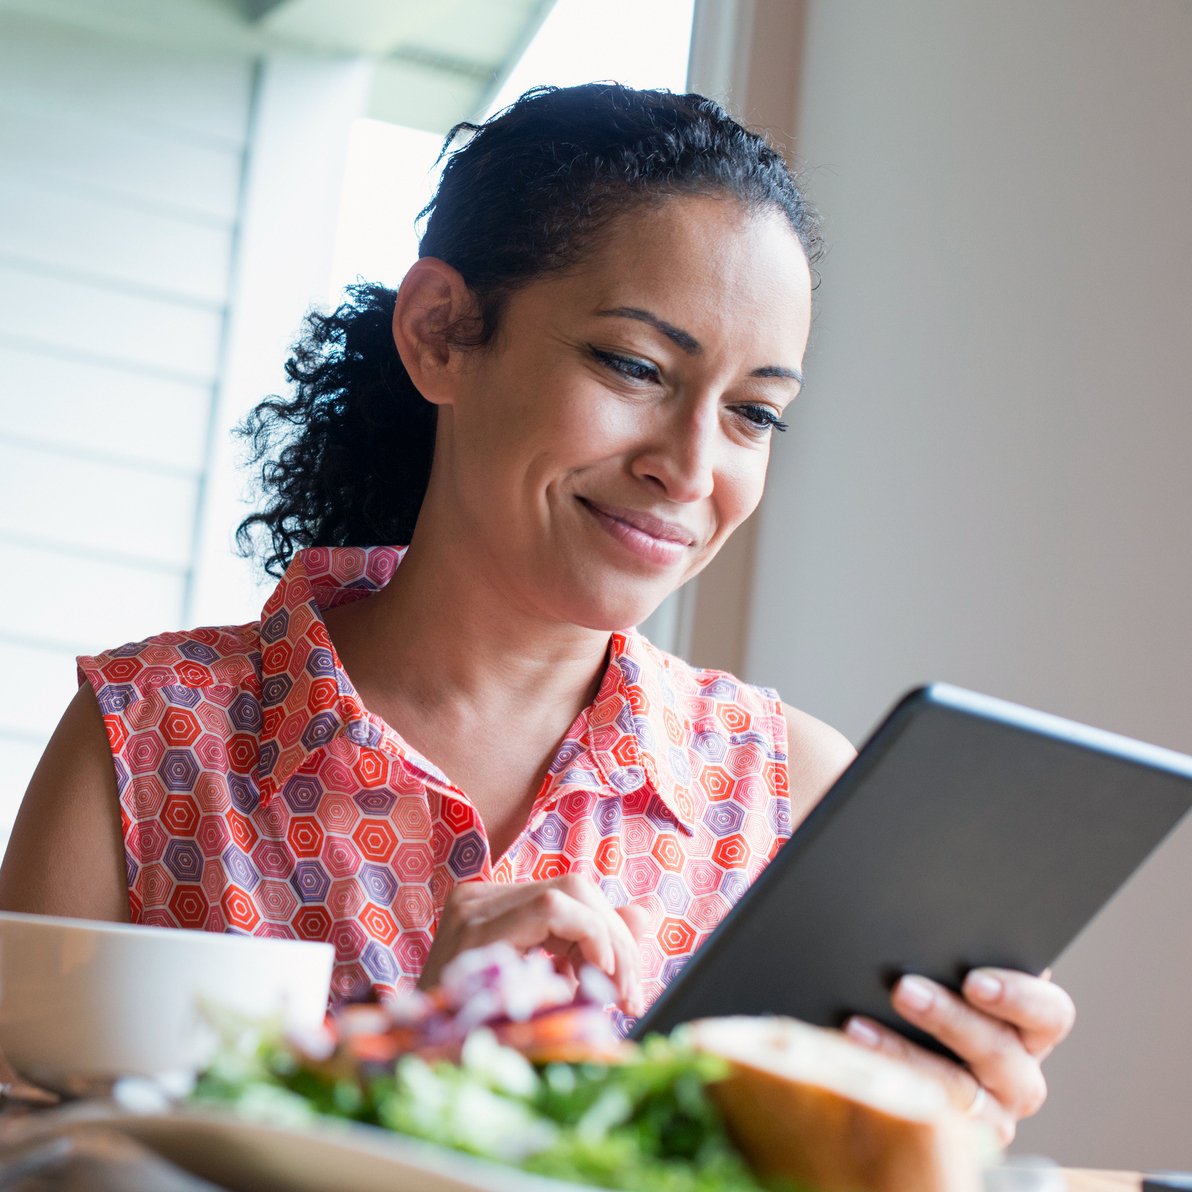 A woman sits at a dining room table eating a salad and a piece of bread while quietly smiling and reading a tablet computer.